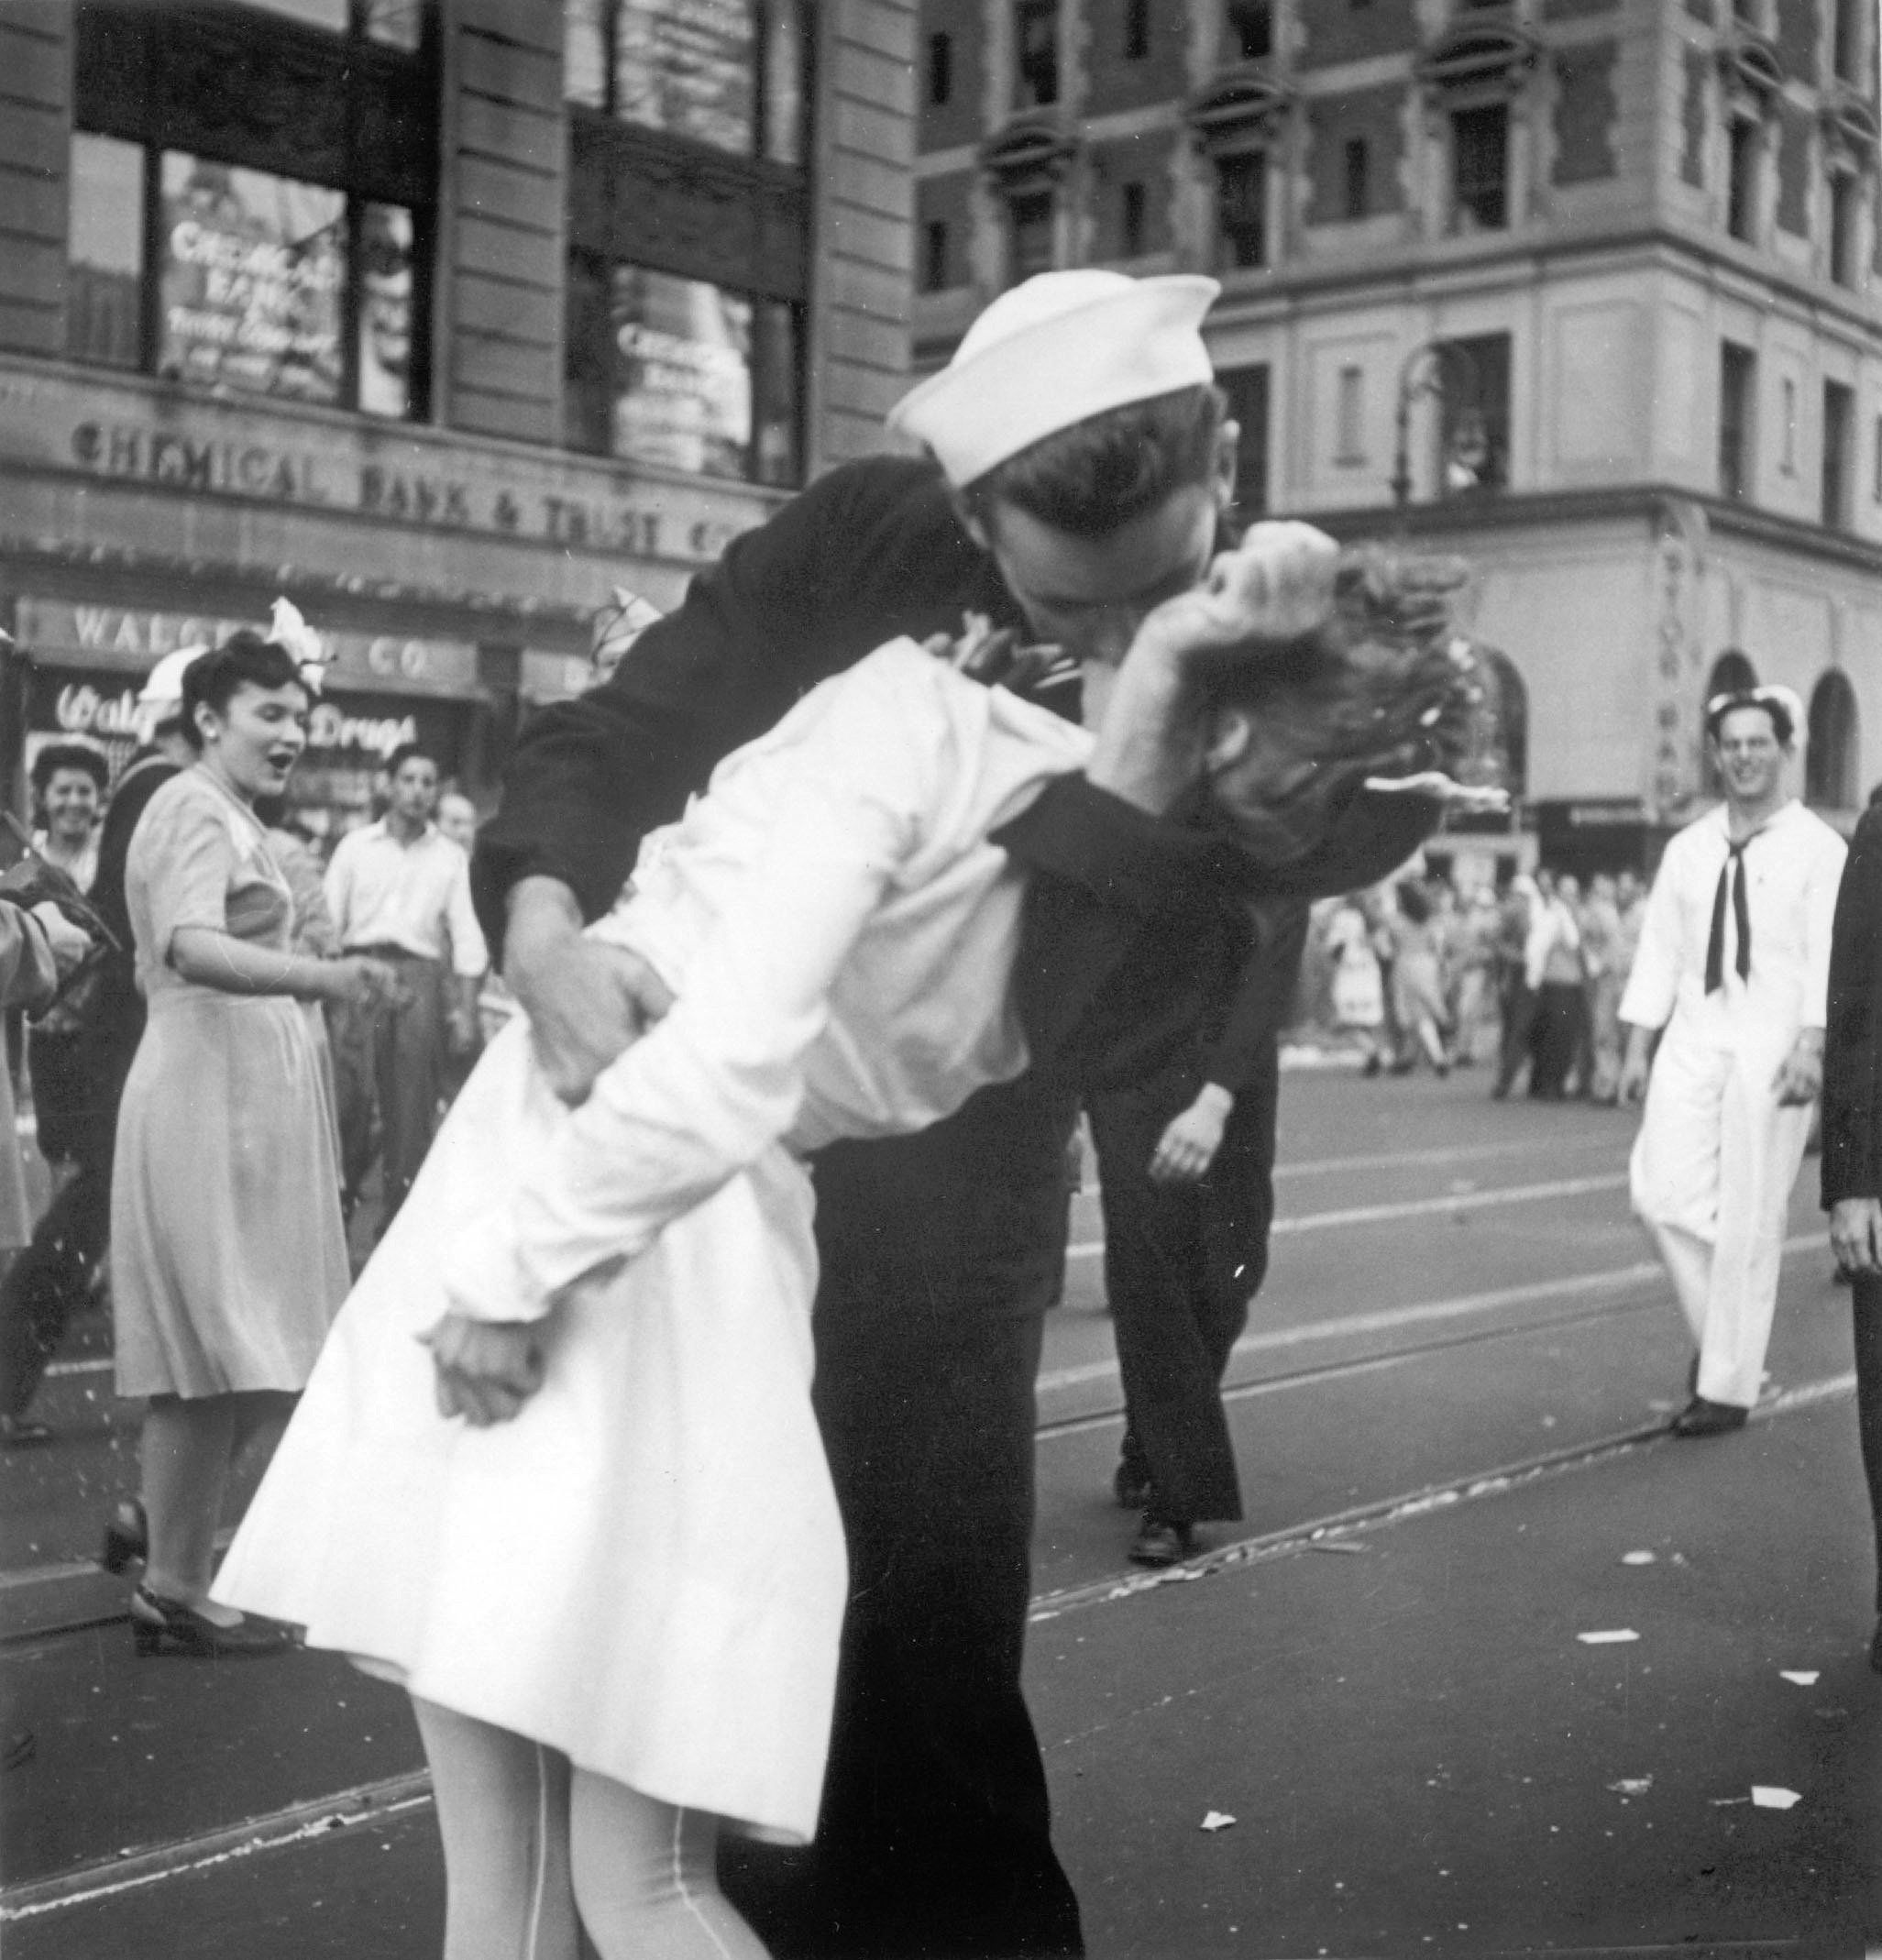 Statue based on famous WWII 'kissing sailor' photo spray-painted with '#MeToo'